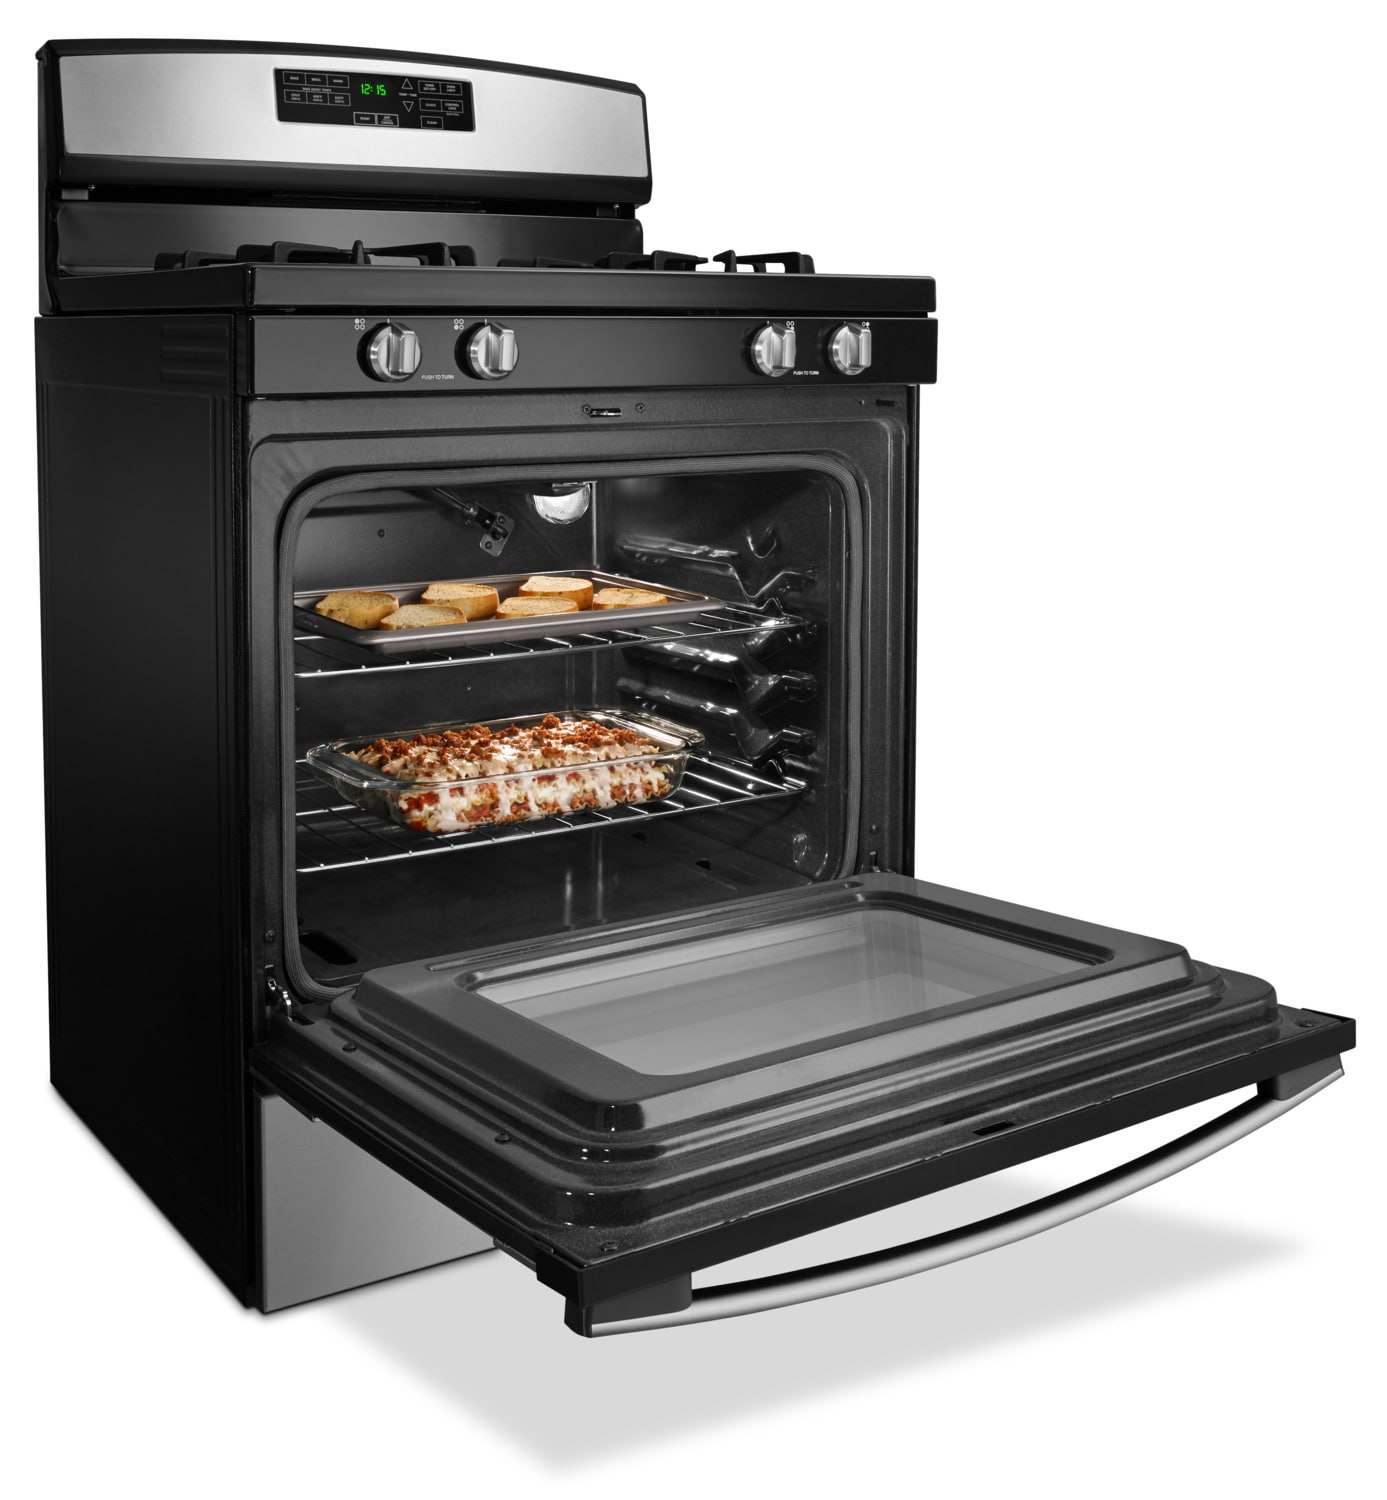 Amana 5.0 Cu. Ft. Freestanding Gas Range With Self-Clean